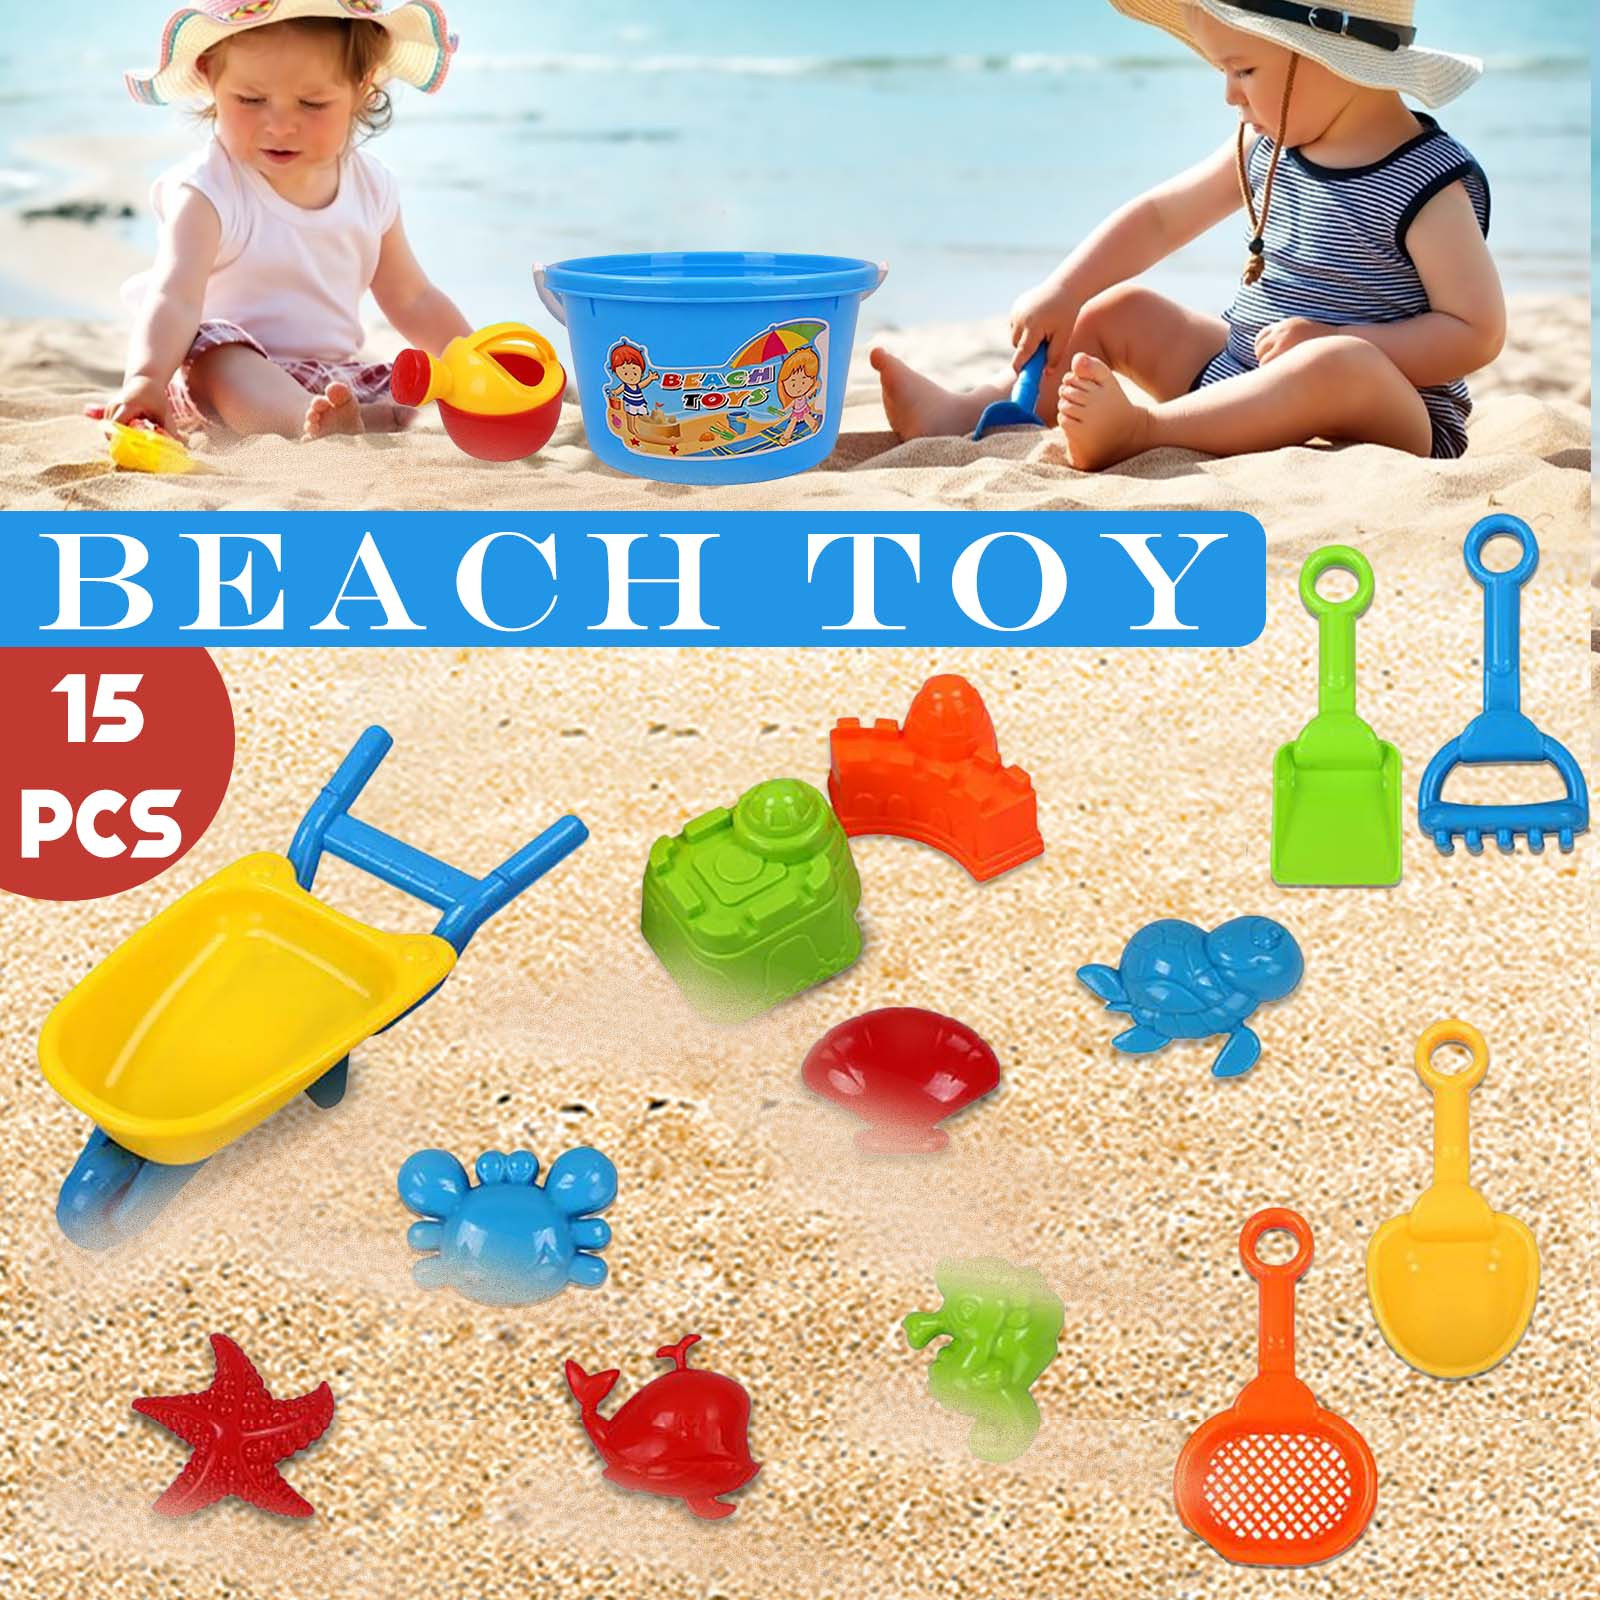 Summer Children Beach Table Toy Play Water Digging Sandglass Play Sand Tool Suit